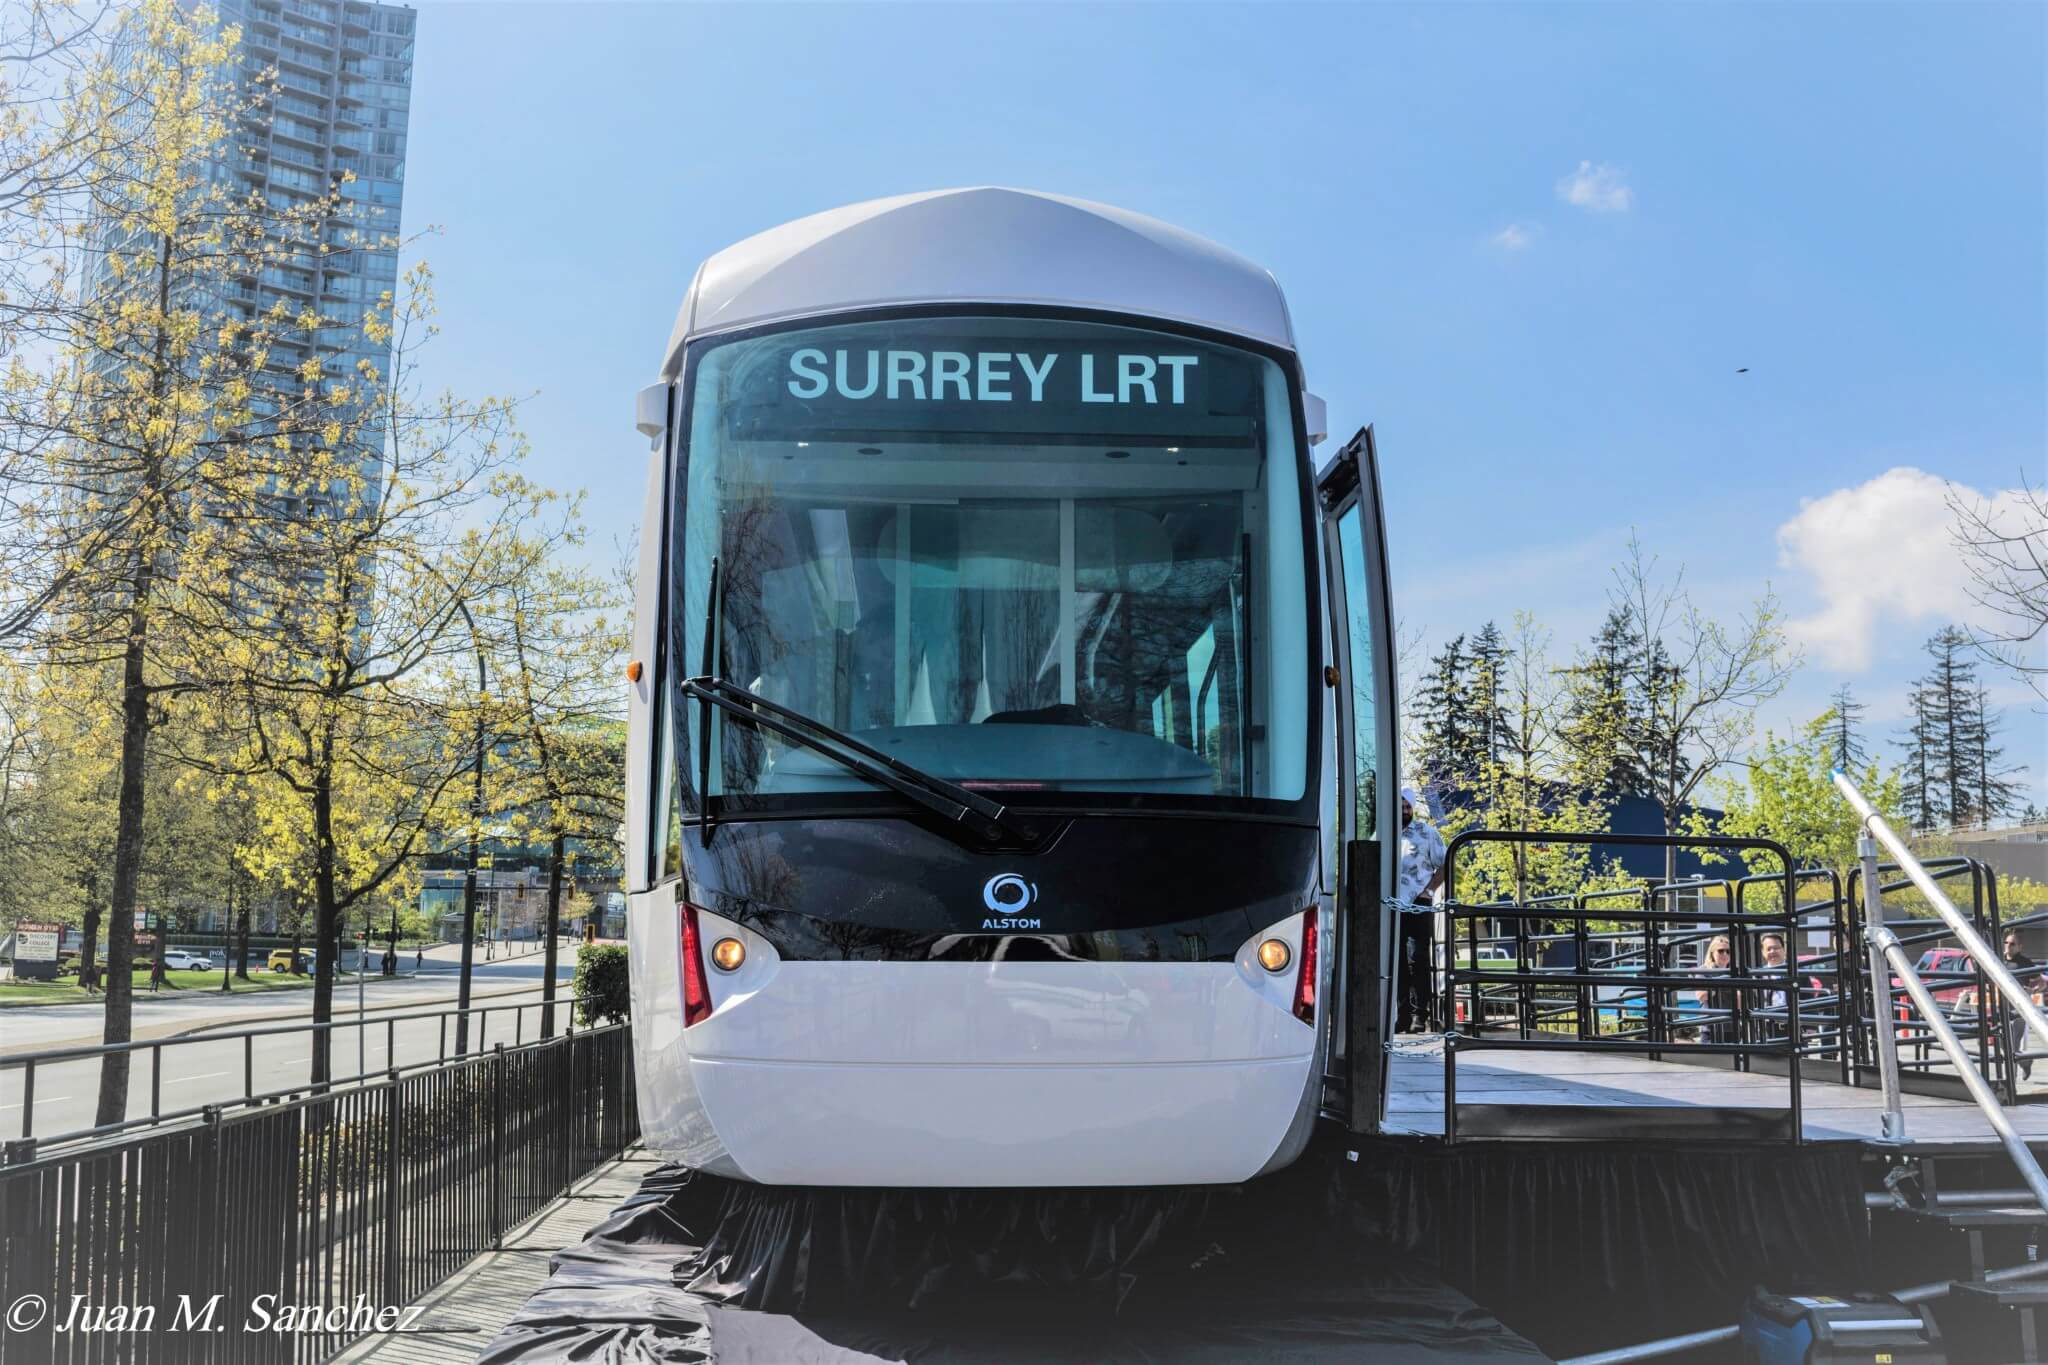 Surrey Board of Trade CEO makes misleading claim on SkyTrain vs LRT cost difference